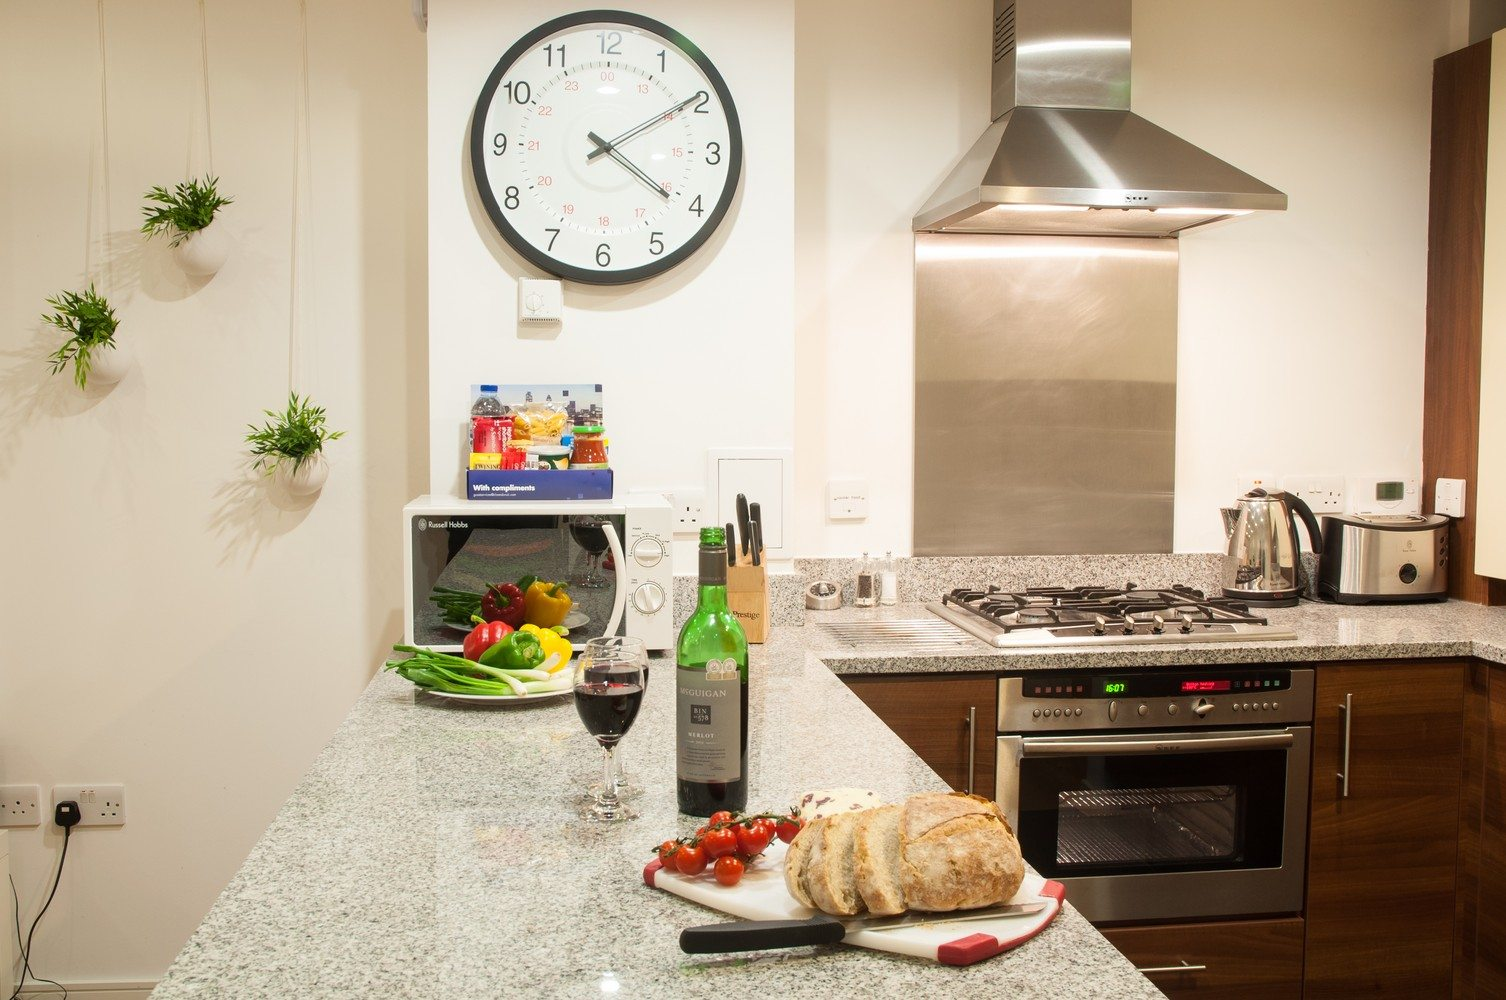 Serviced-Accommodation-Liverpool-Street---Steward-Street-Apartments-Kitchen